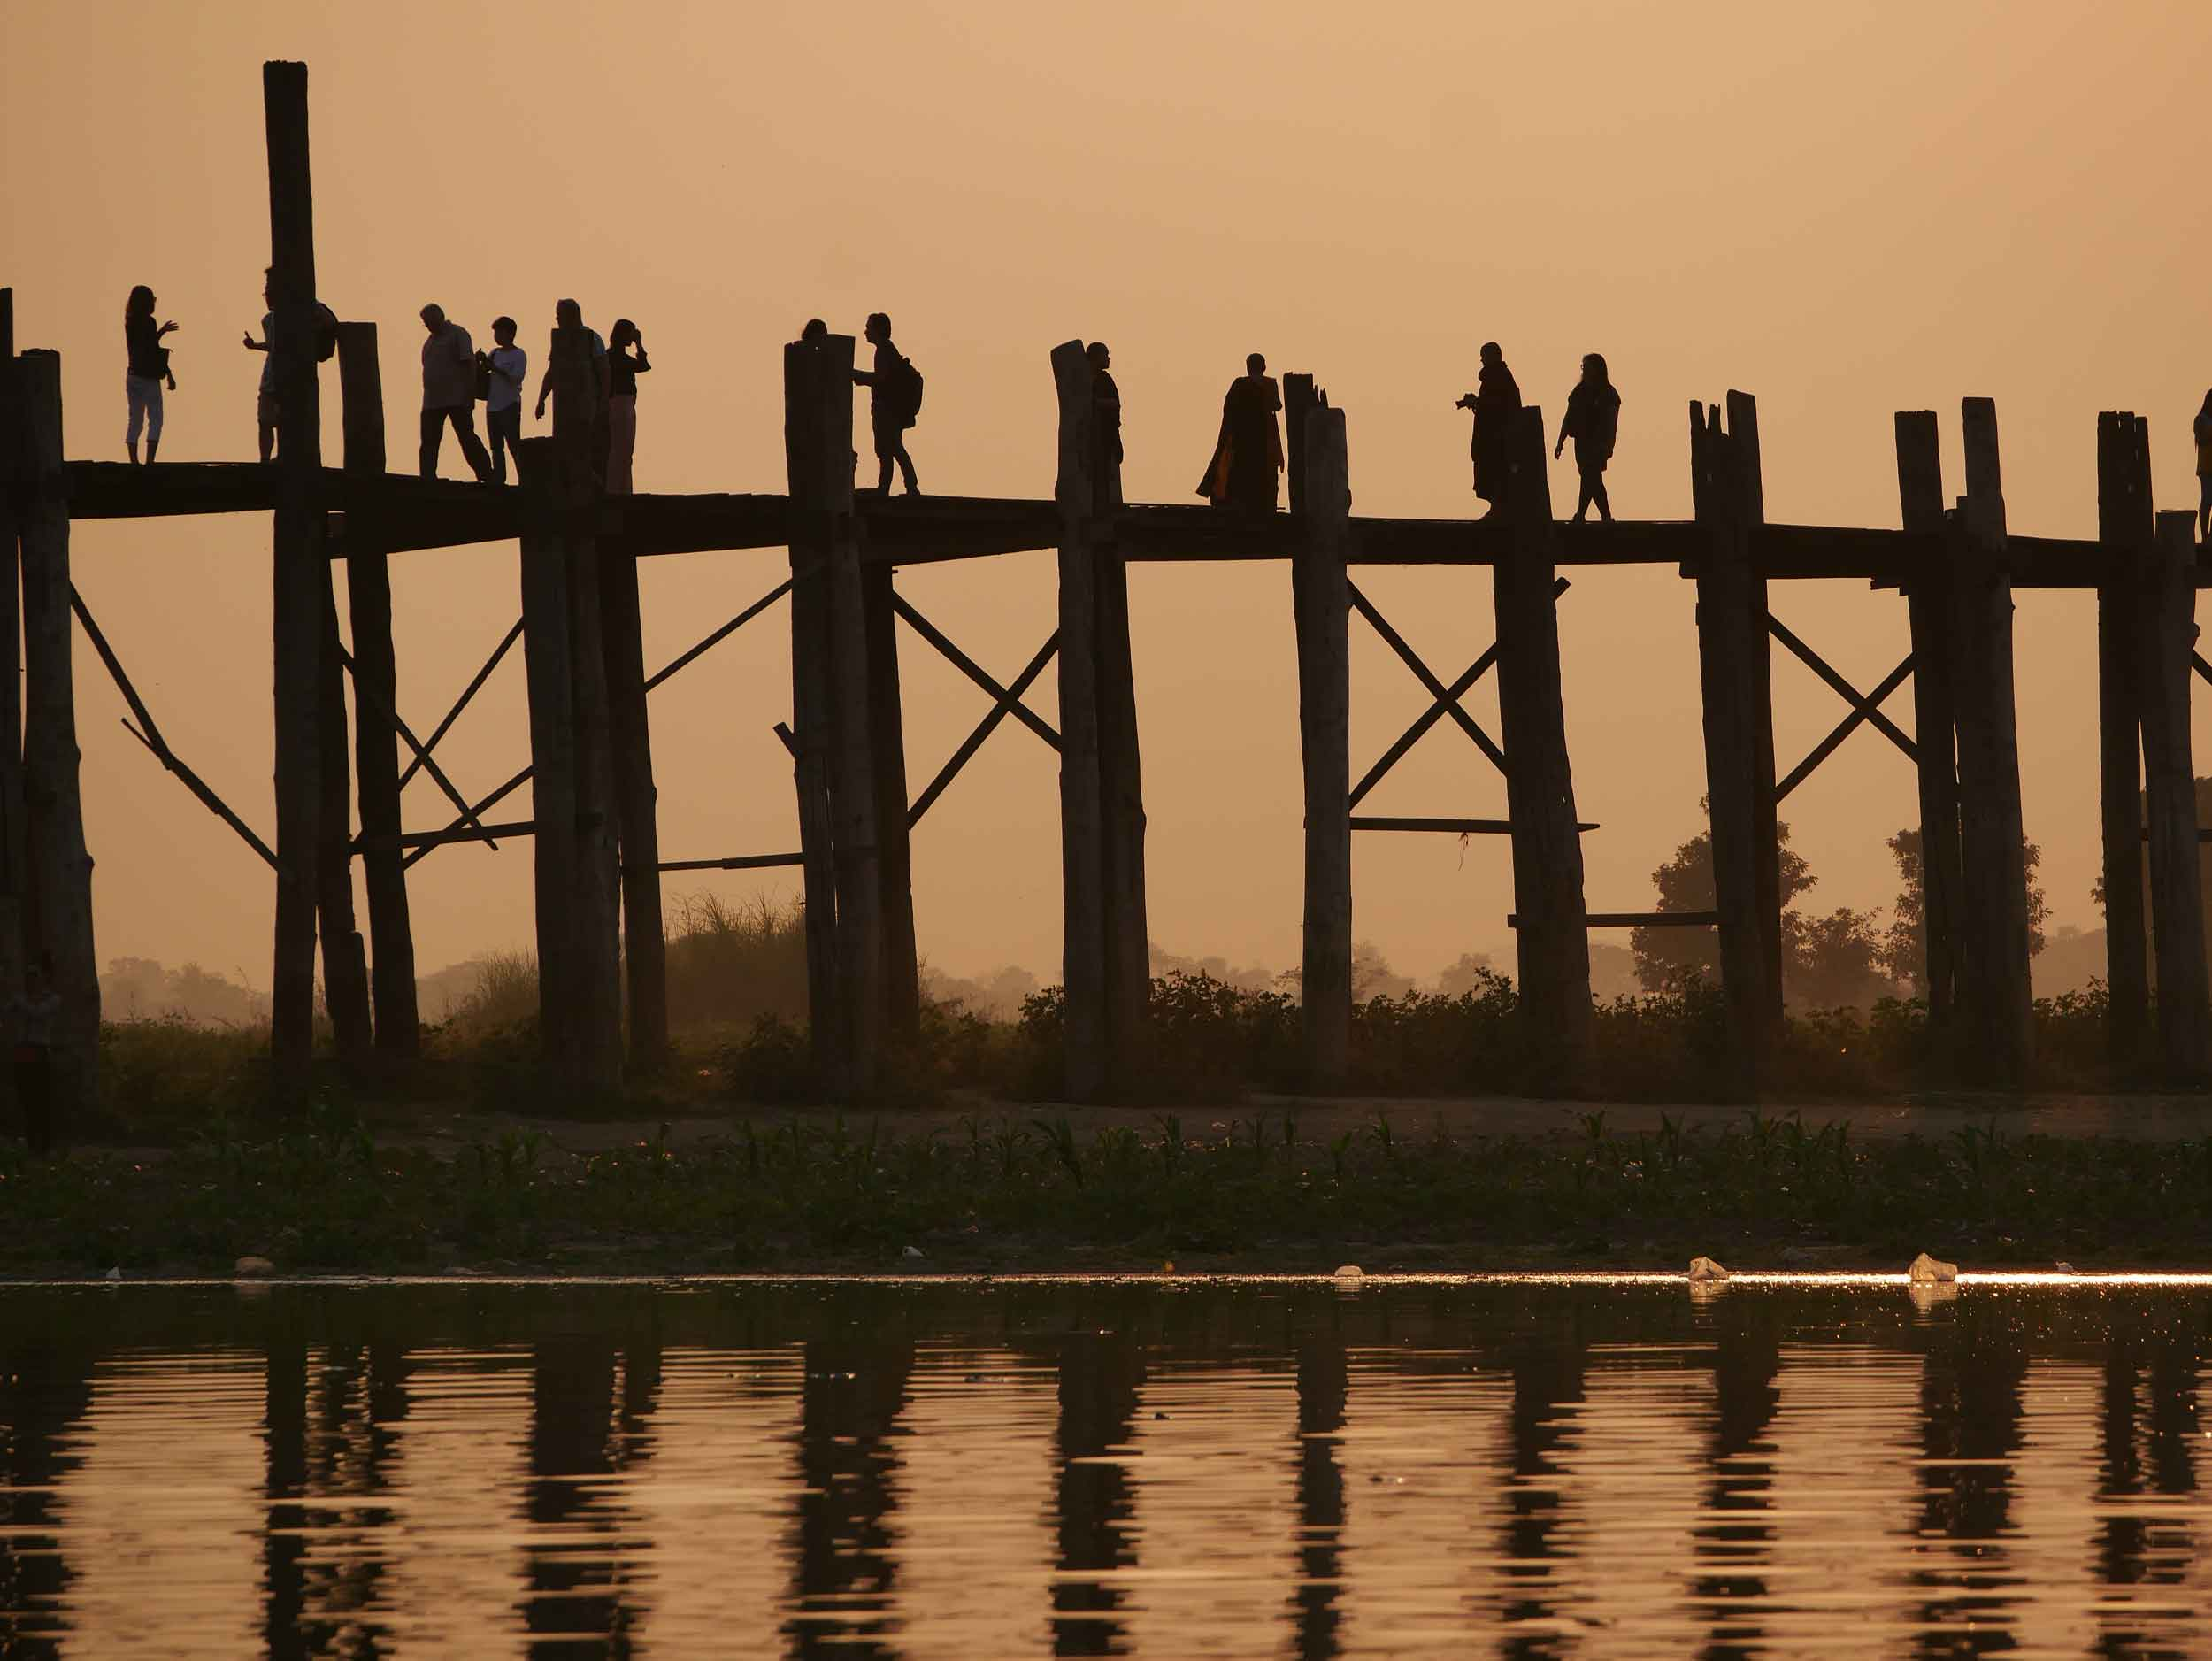 Made of nearly 1,100 wood pillars, U-Bein is thought to be the world's oldest and longest teak bridge (Feb 18).